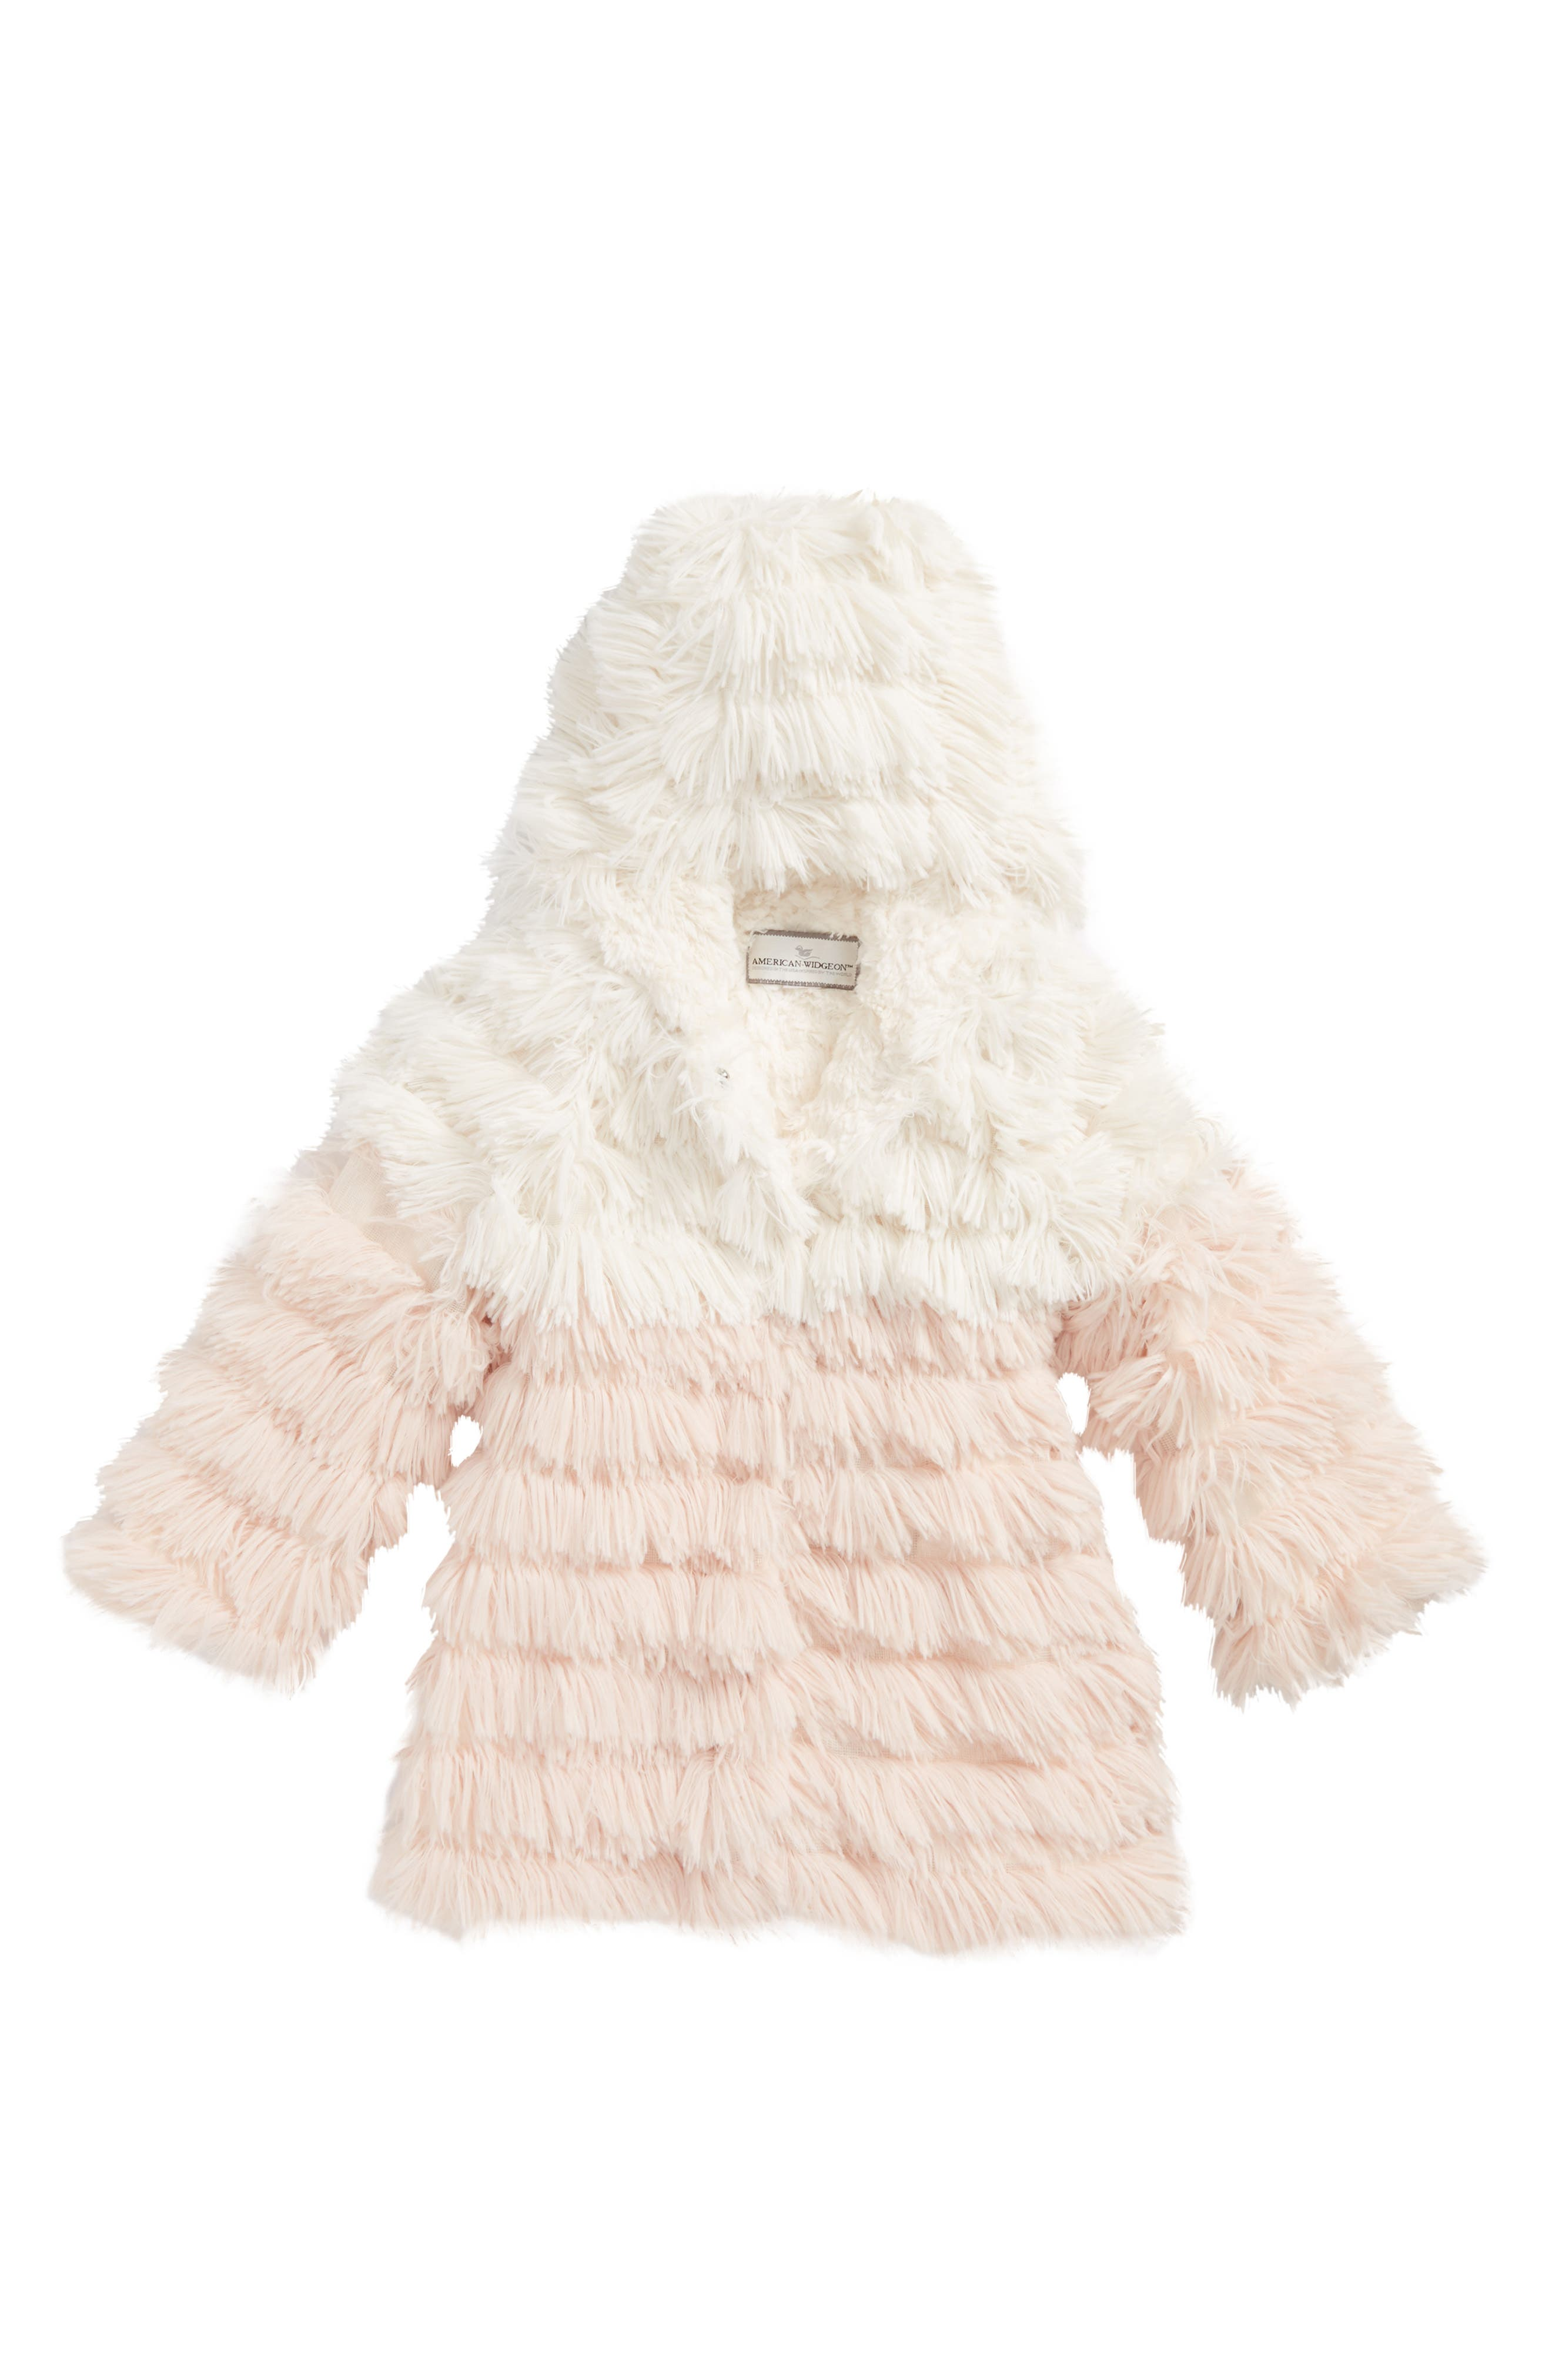 Widgeon Shaggy Colorblock Faux Fur Hooded Coat (Toddler Girls & Little Girls)